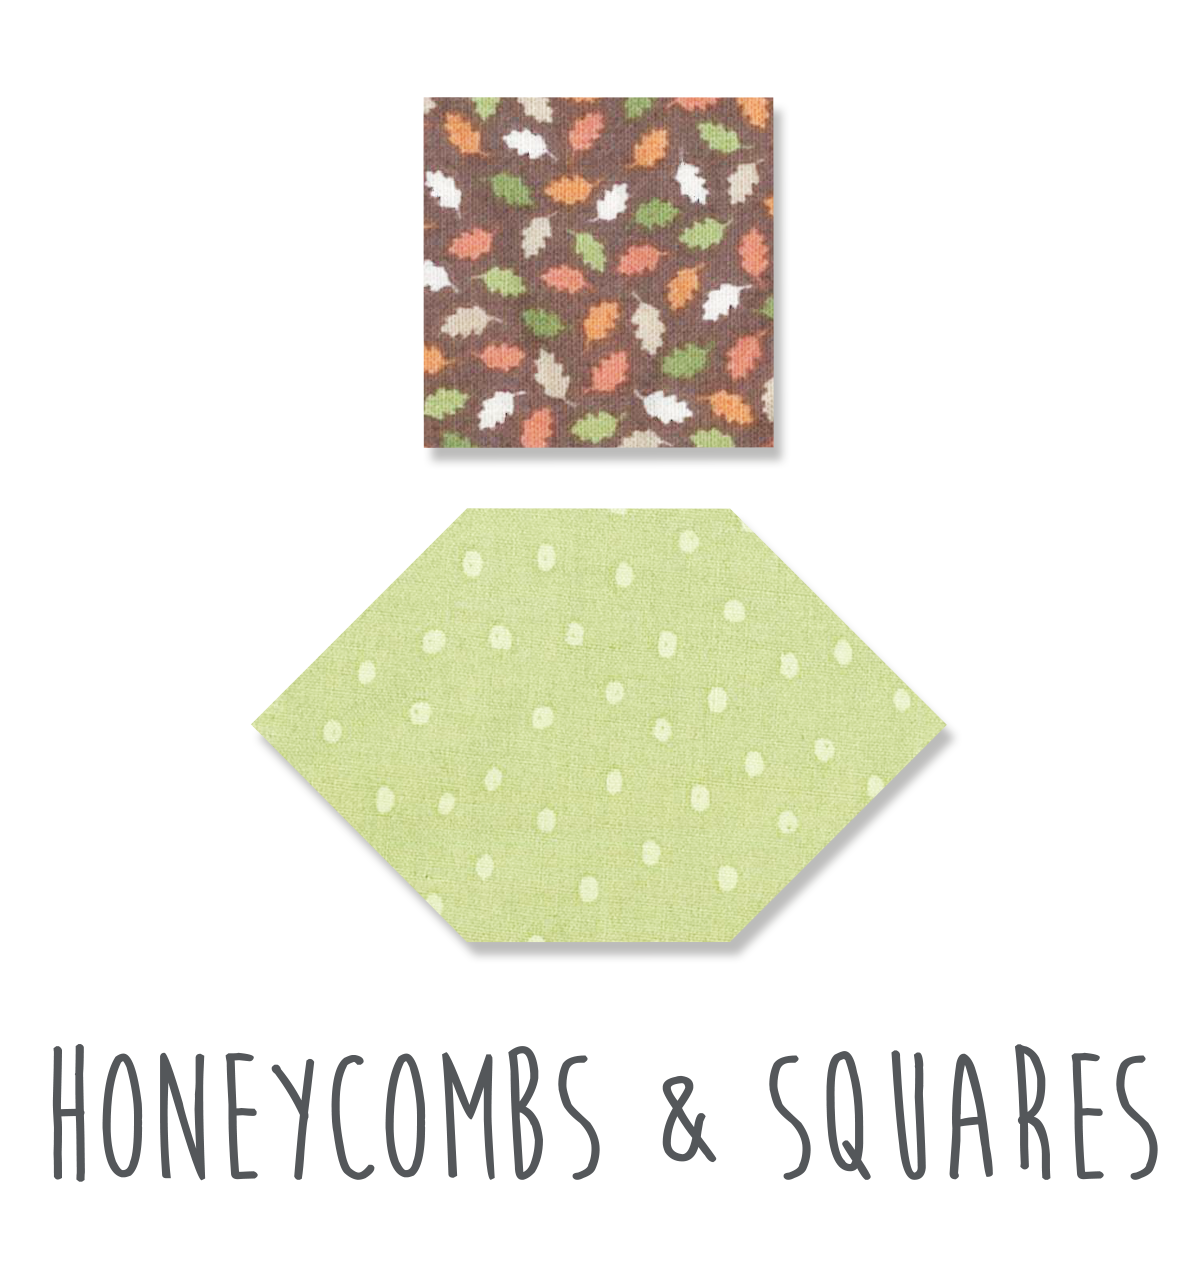 Honeycombs and Squares